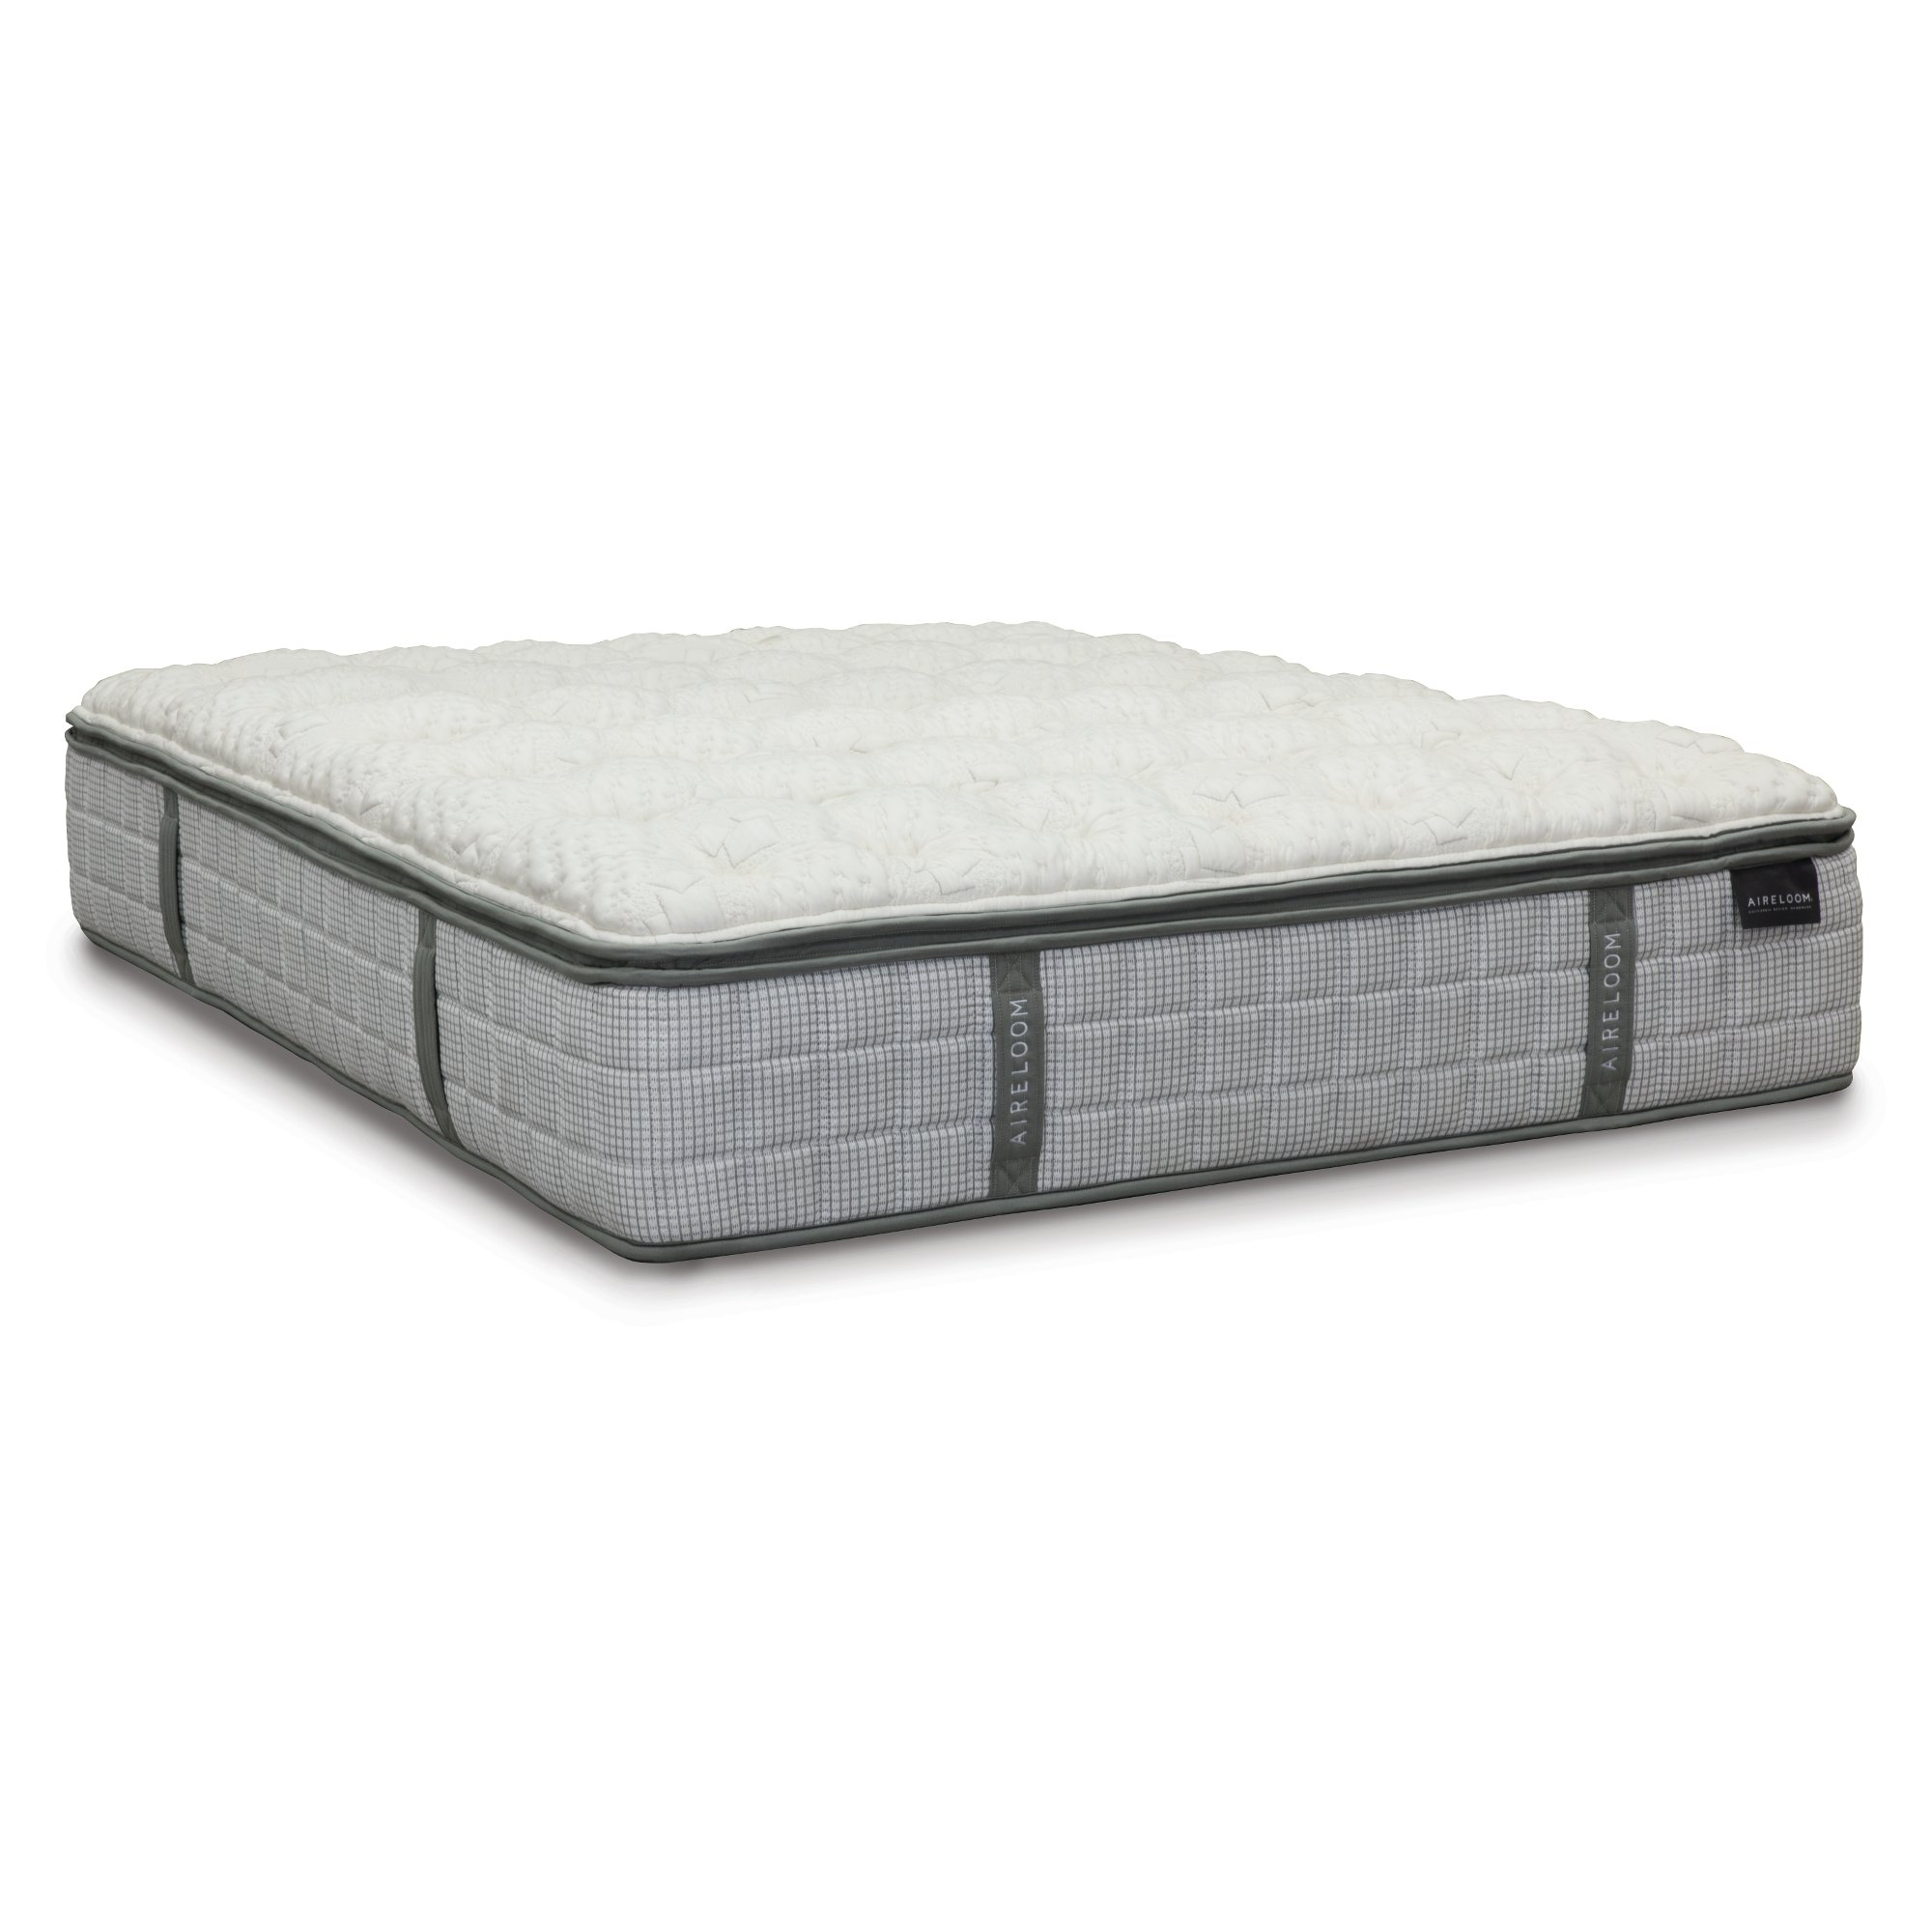 King mattress and King size mattress sets Searching Aireloom